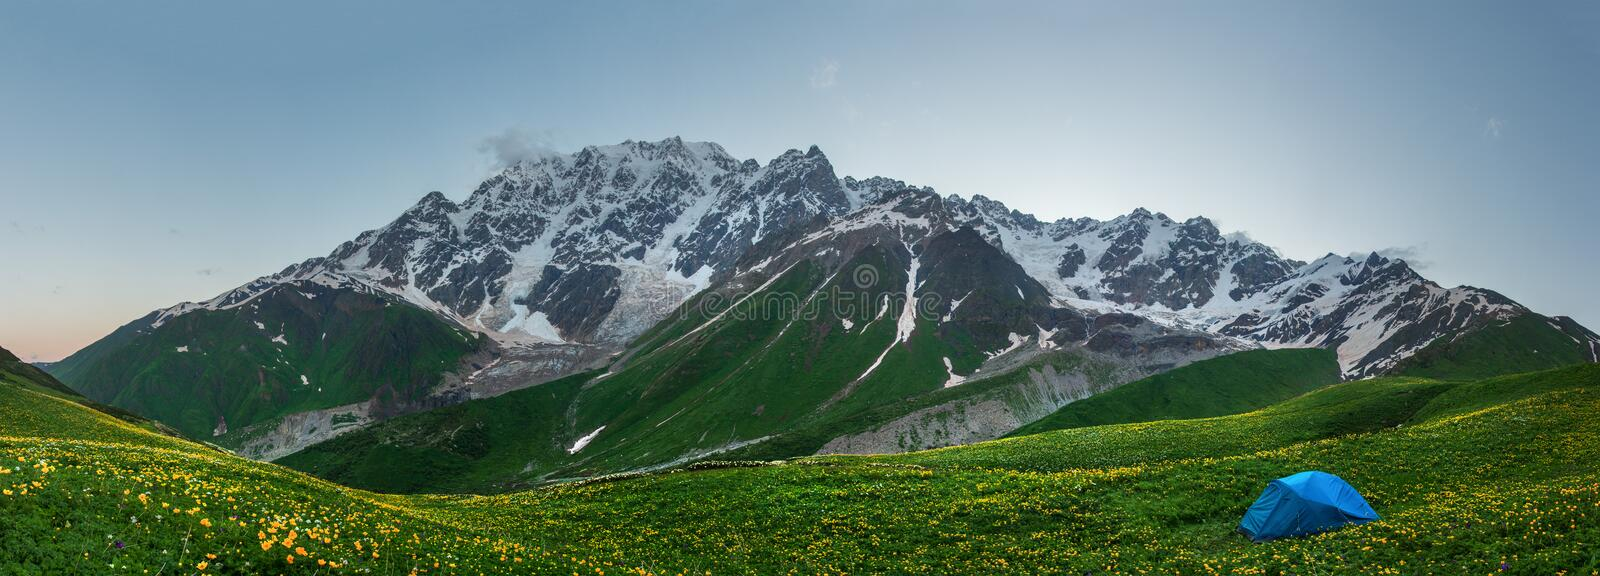 Panorama Svaneti mountains in Georgia. Landscape of Caucasus mountain range. Scenic mountains with tent in tourist camp stock images